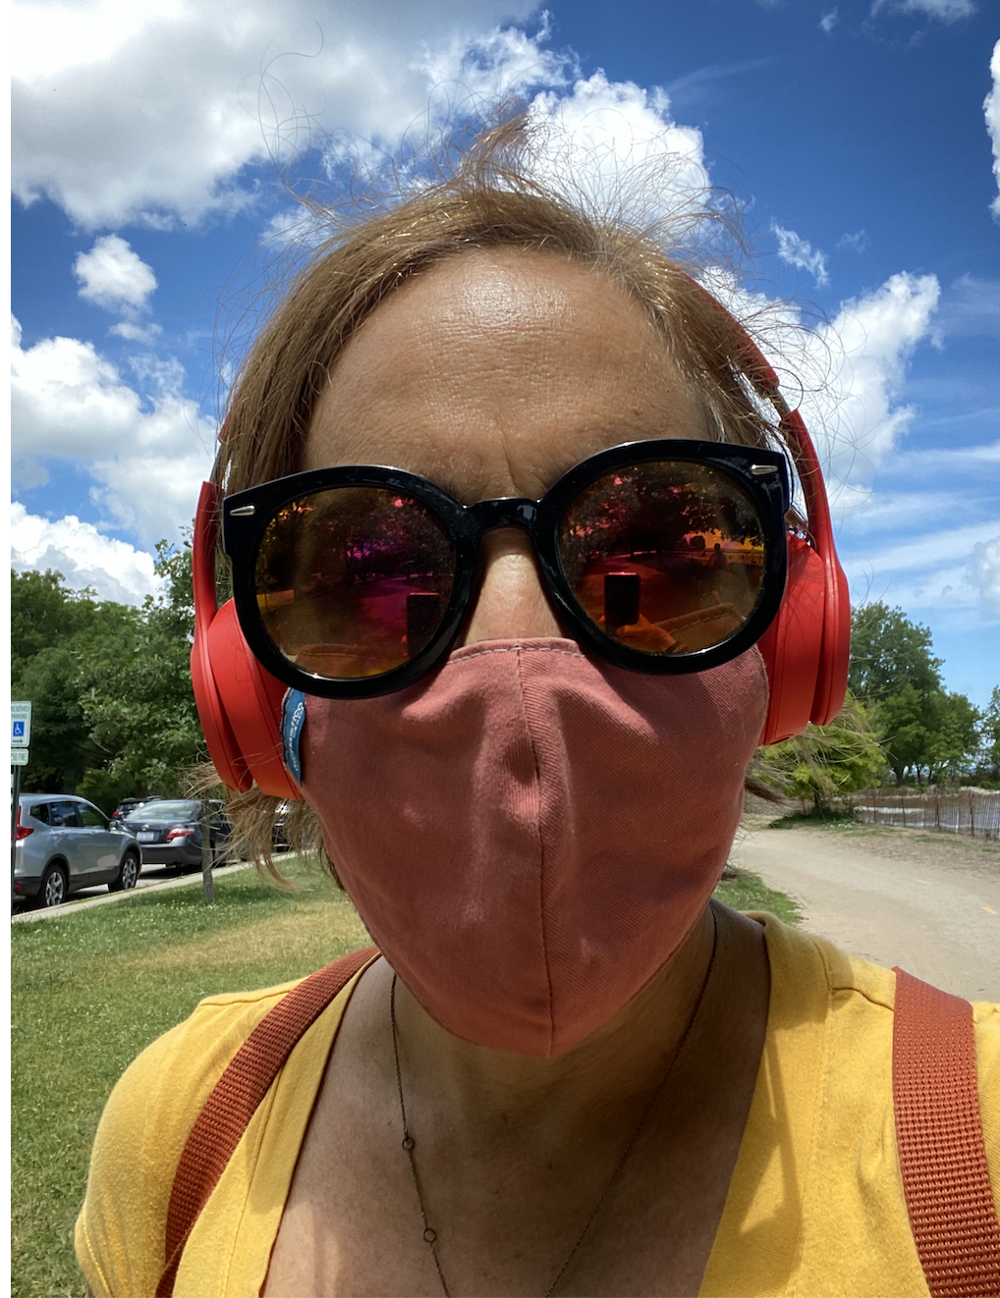 A photo of a woman wearing a mask, big sunglasses and red beats headphones